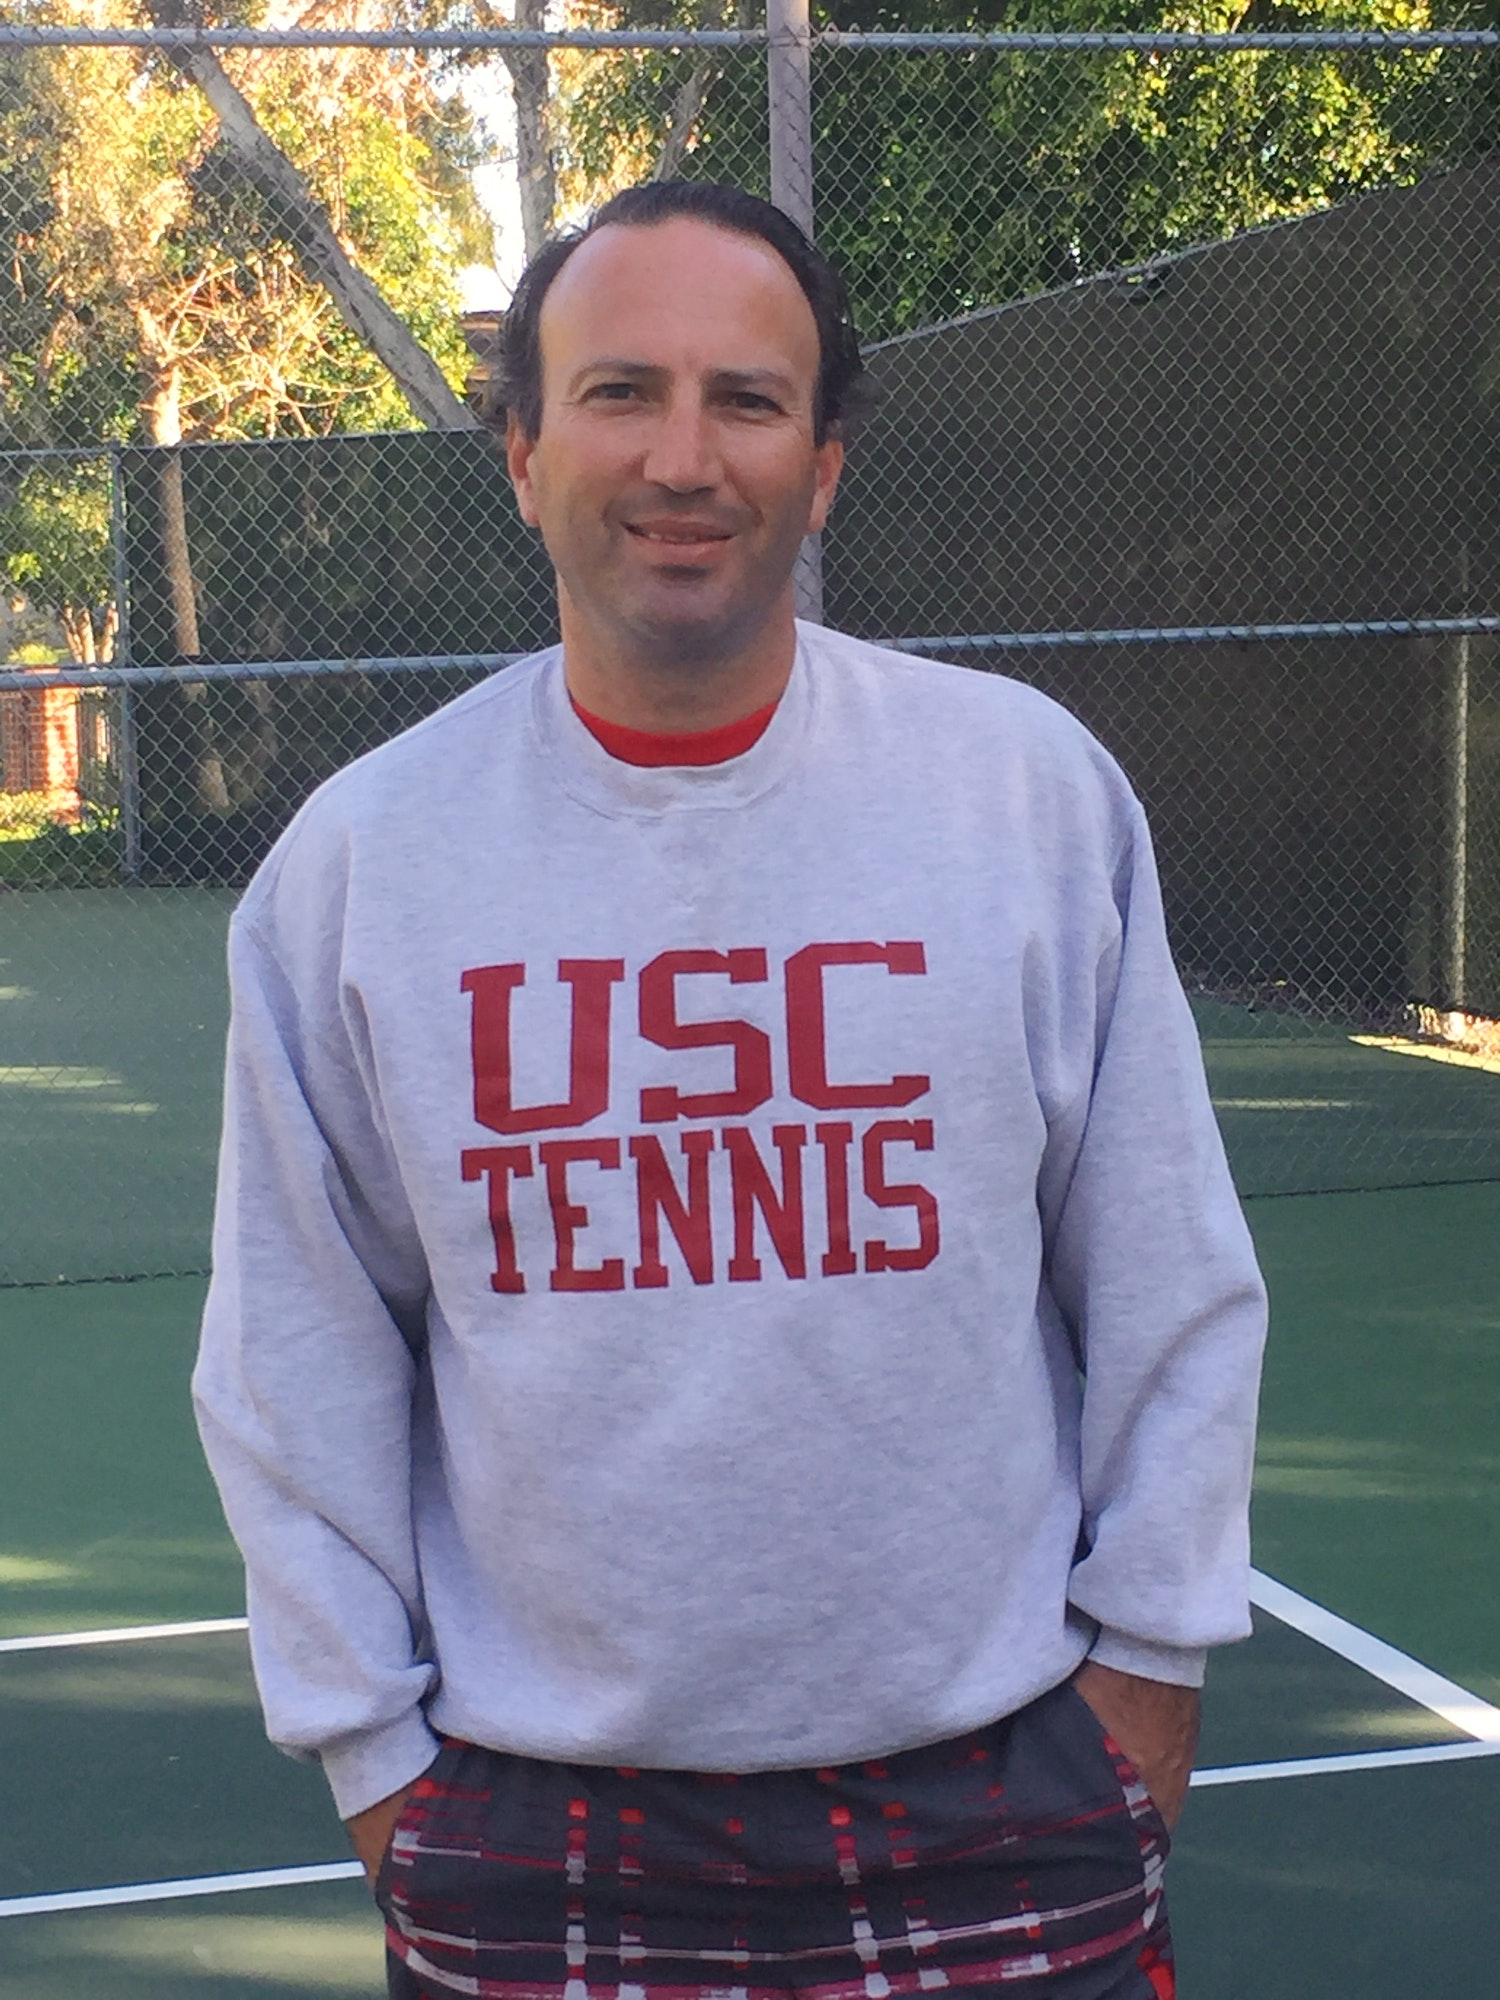 Alex V. teaches tennis lessons in Irvine, CA